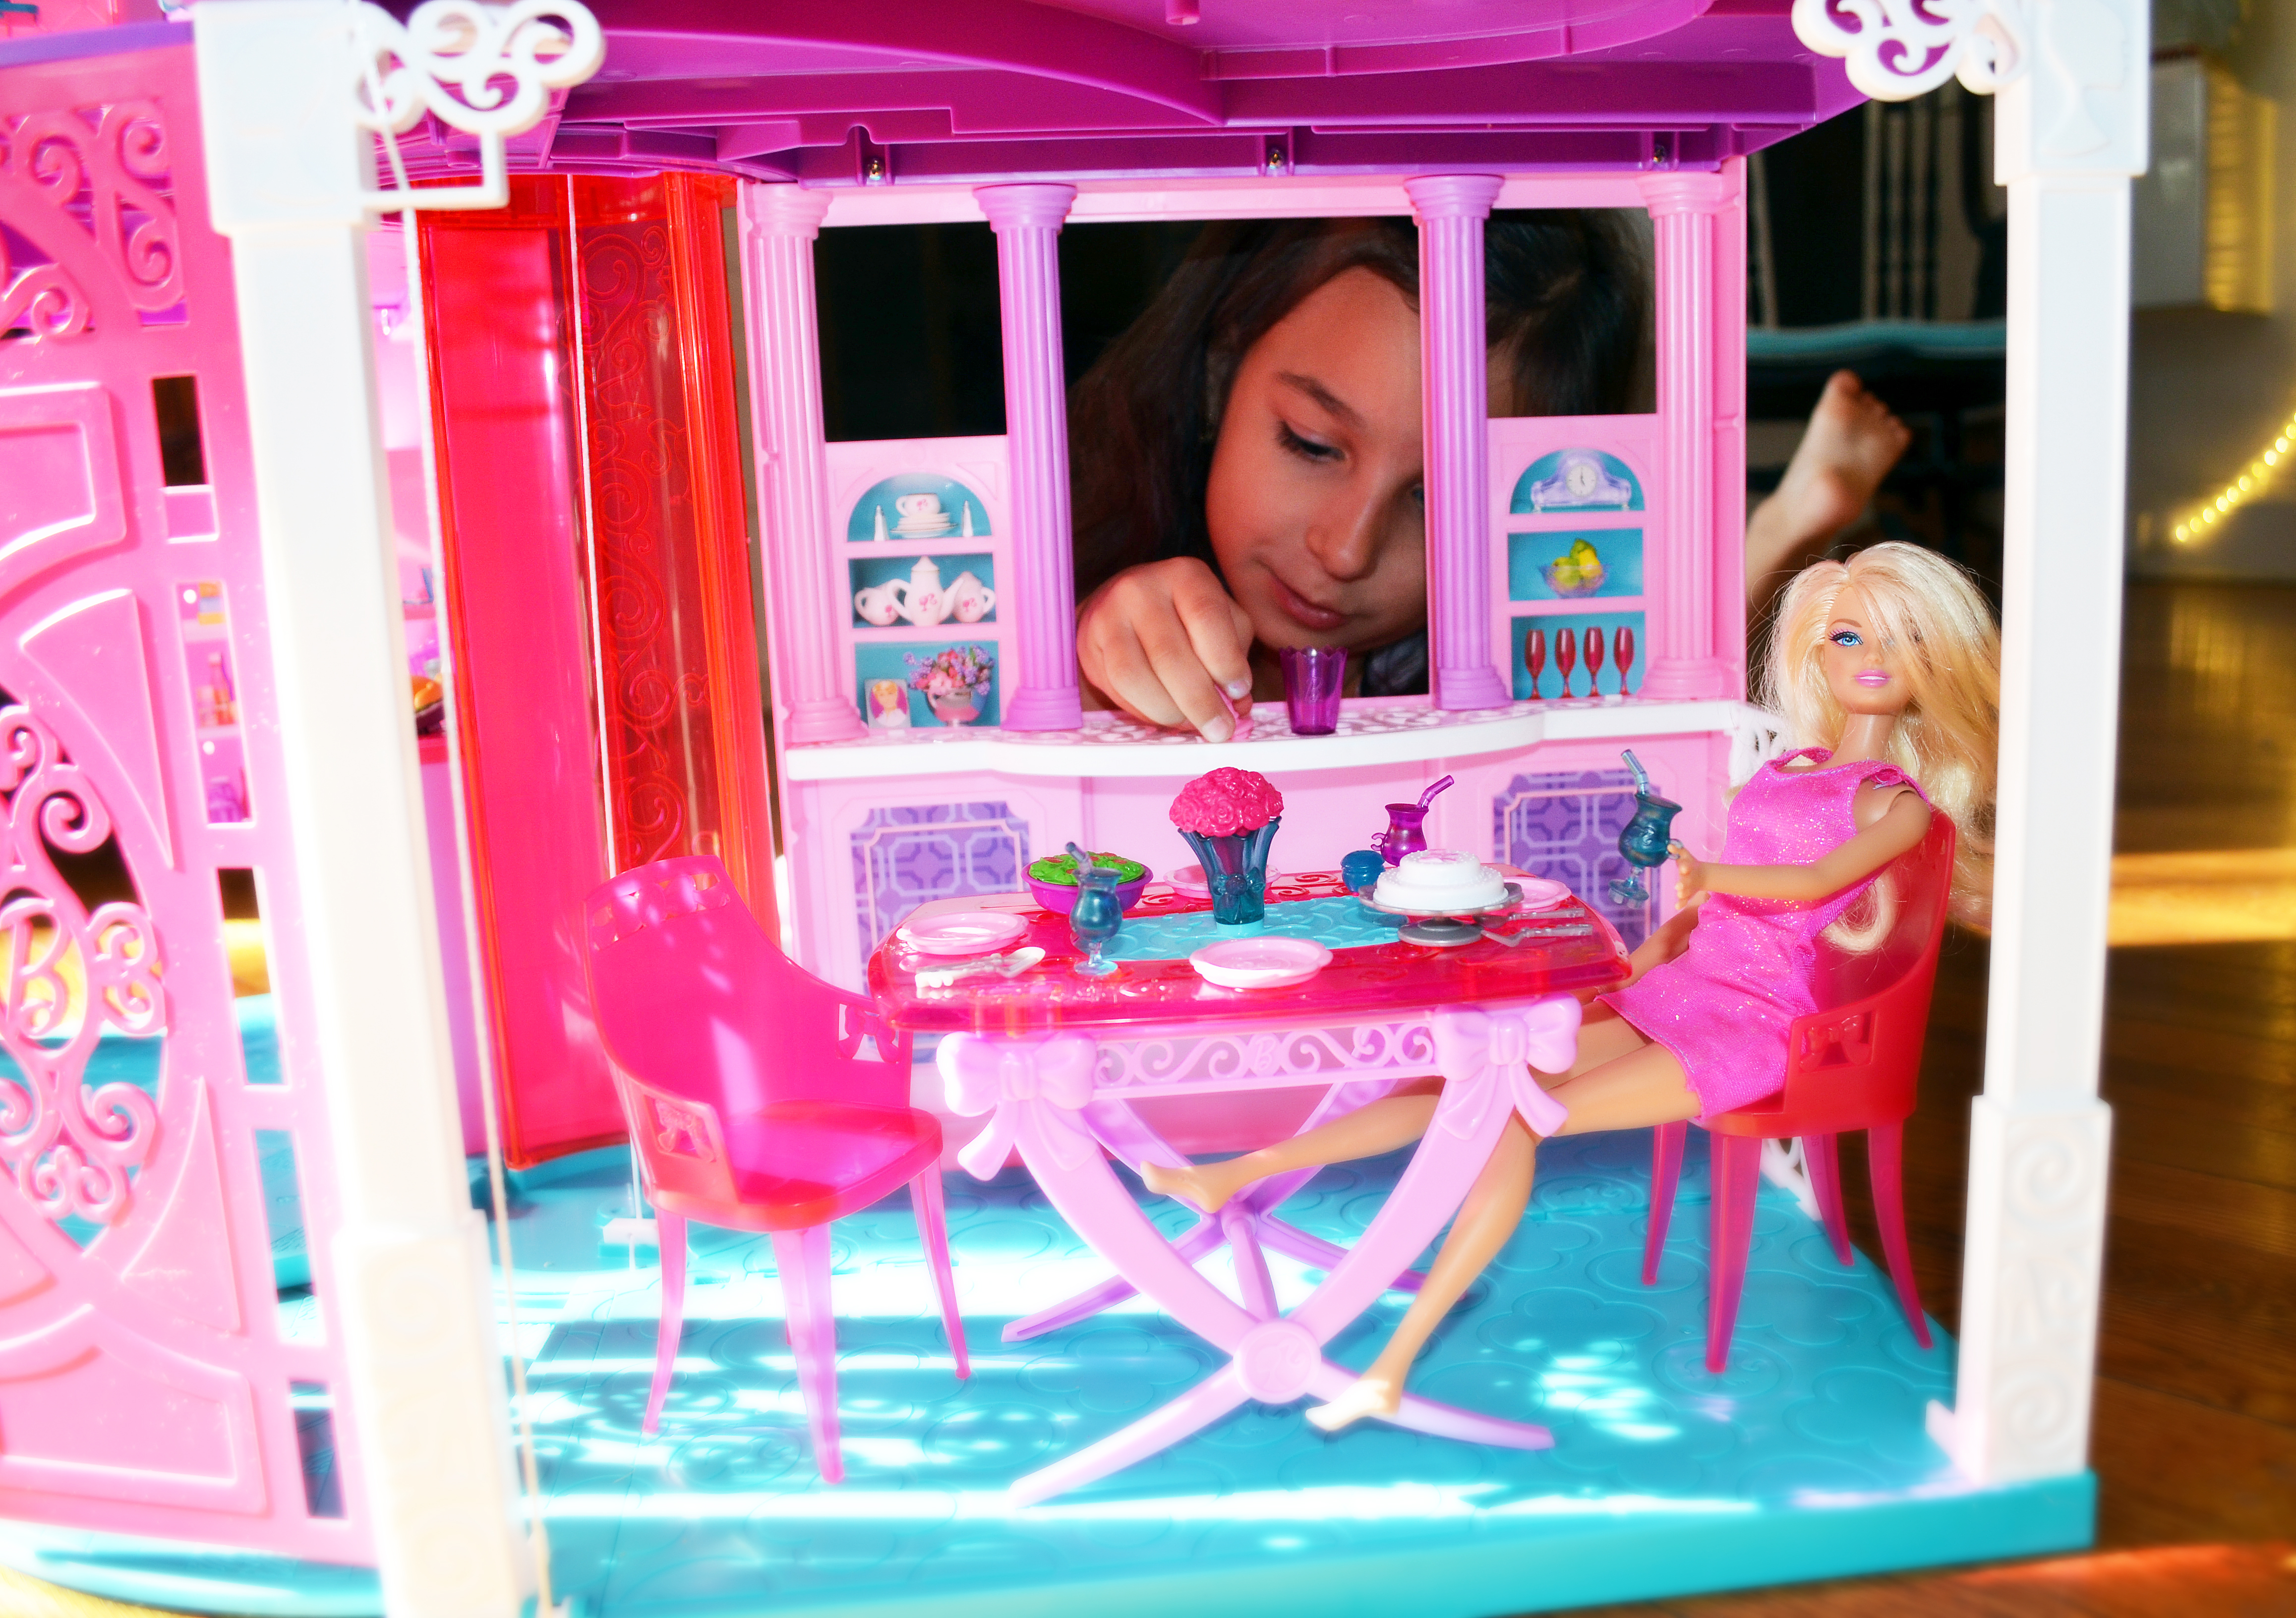 The 2013 Barbie Dreamhouse Marinobambinos